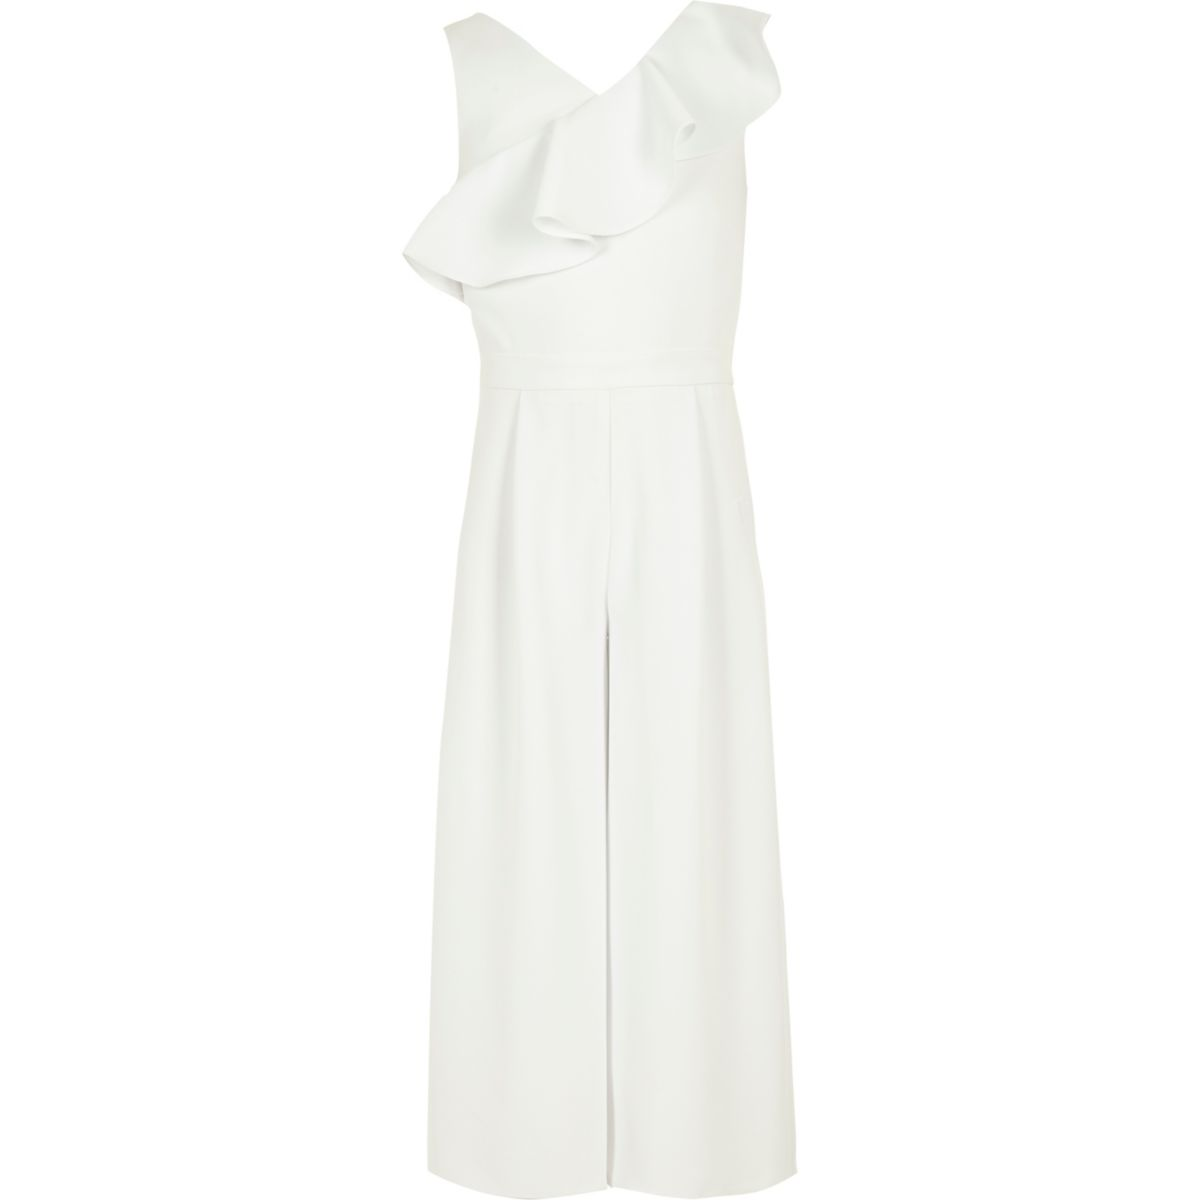 Girls white frill culotte jumpsuit